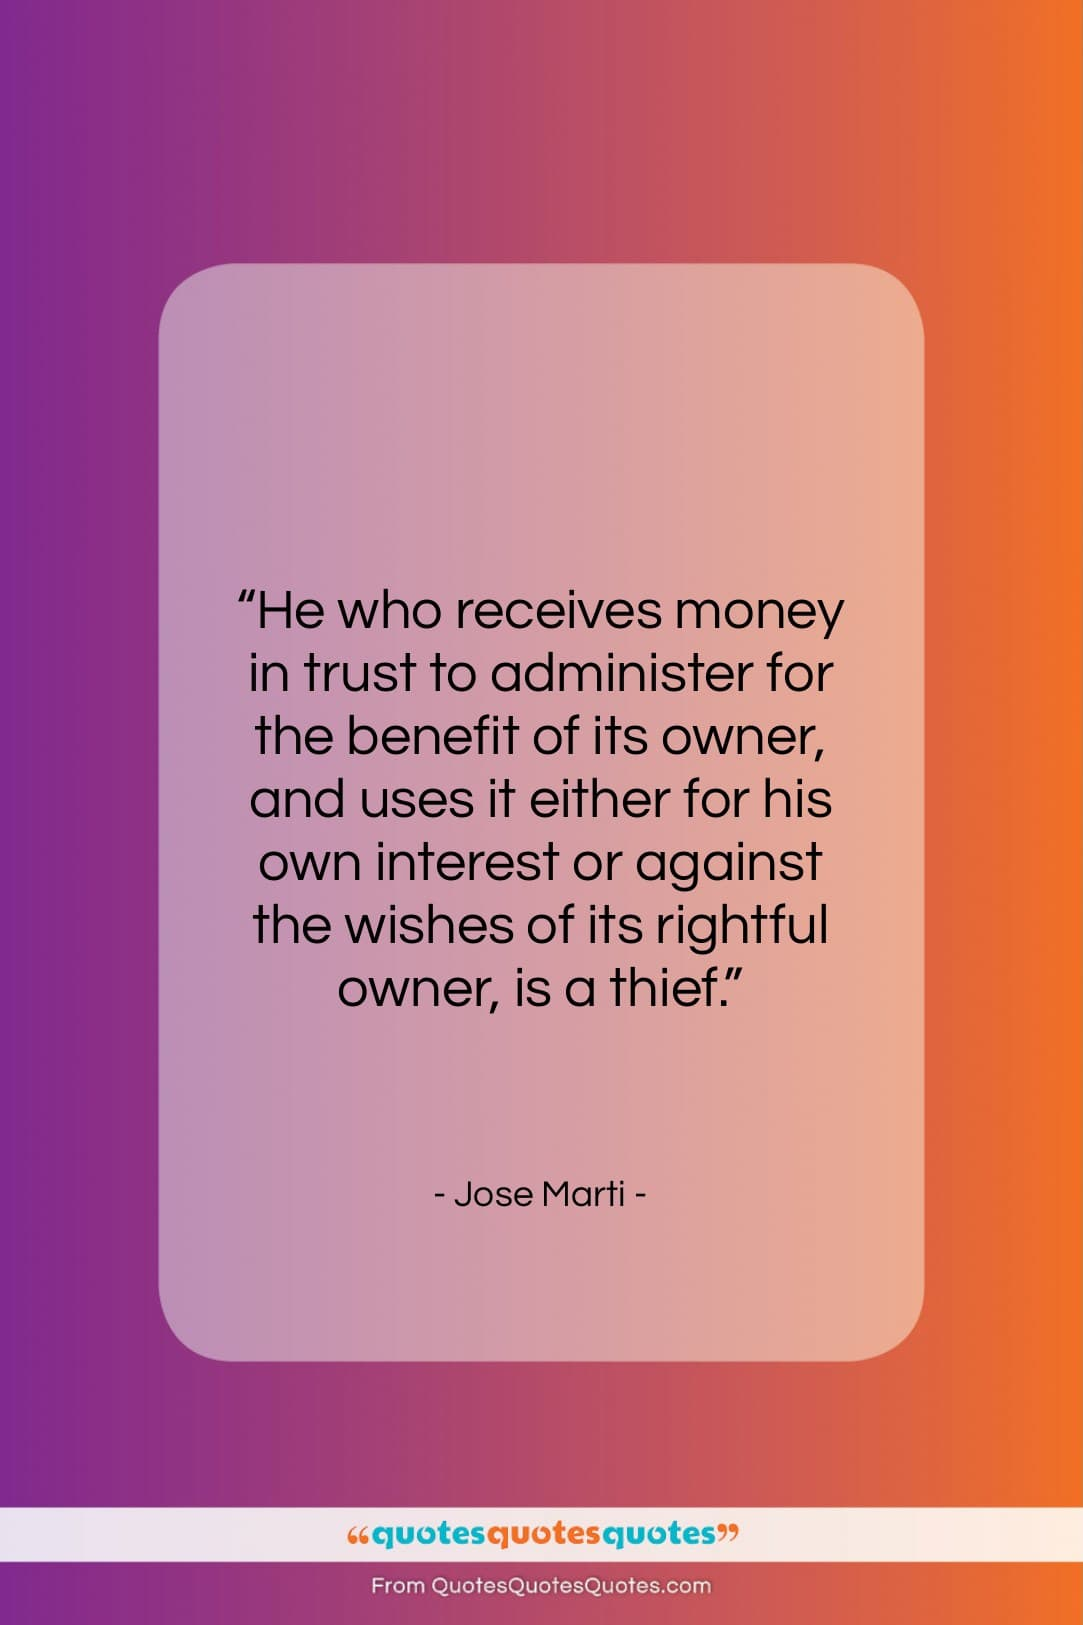 """Jose Marti quote: """"He who receives money in trust to…""""- at QuotesQuotesQuotes.com"""